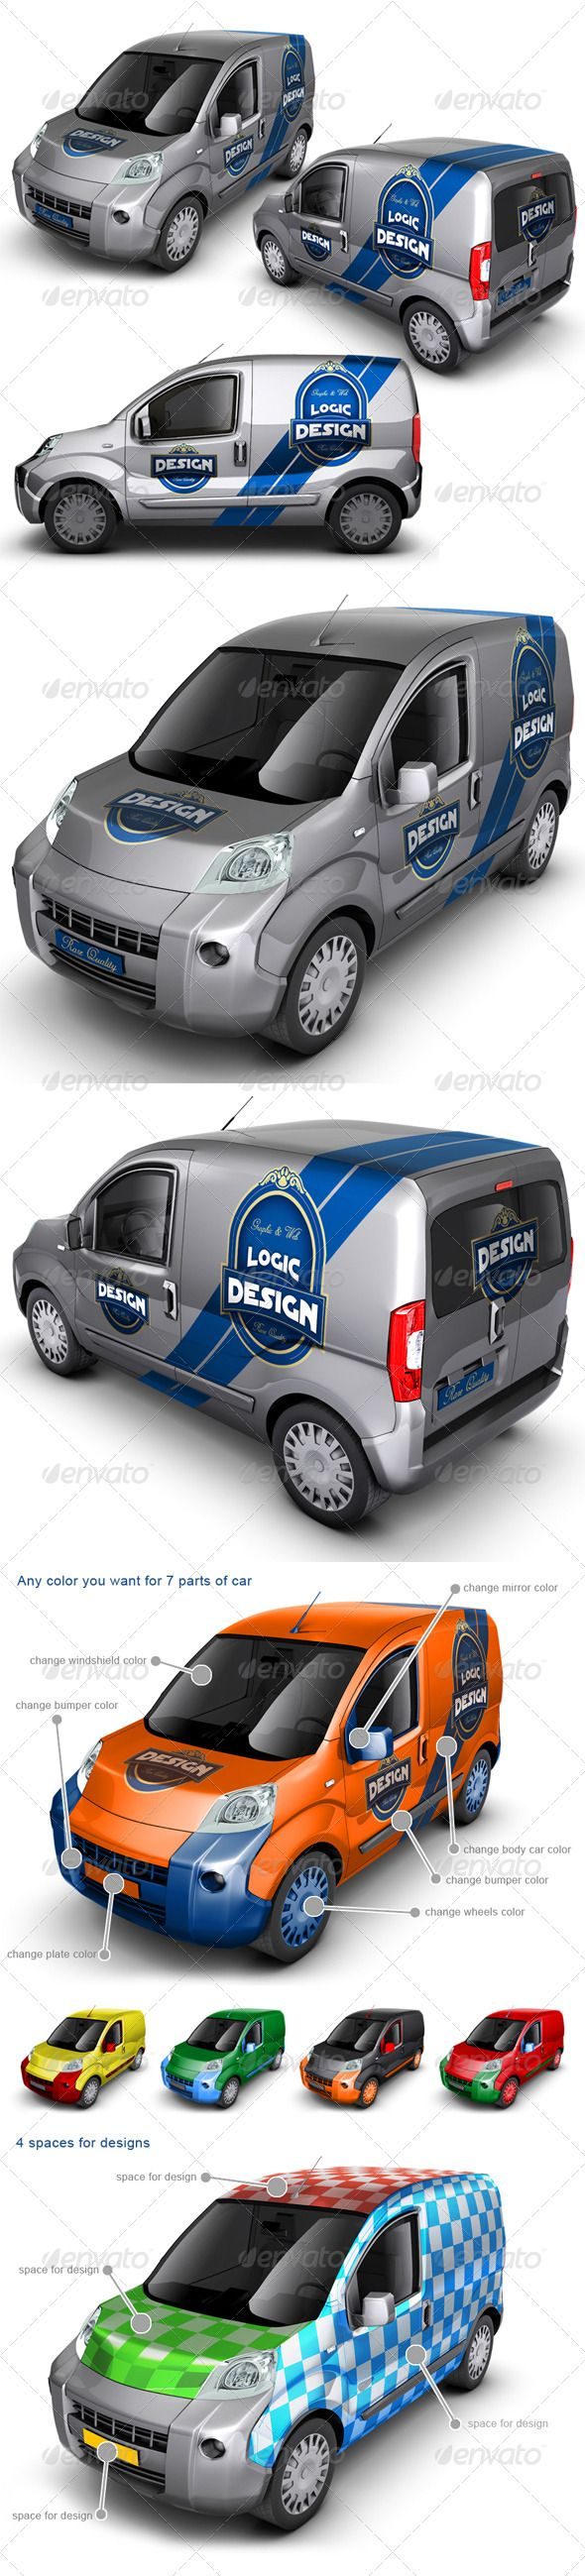 minivan car mock up cars car images and a professional buy minivan car mock up by logic design on graphicriver minivan car mock up description a professional minivan car mock up you can easily change the